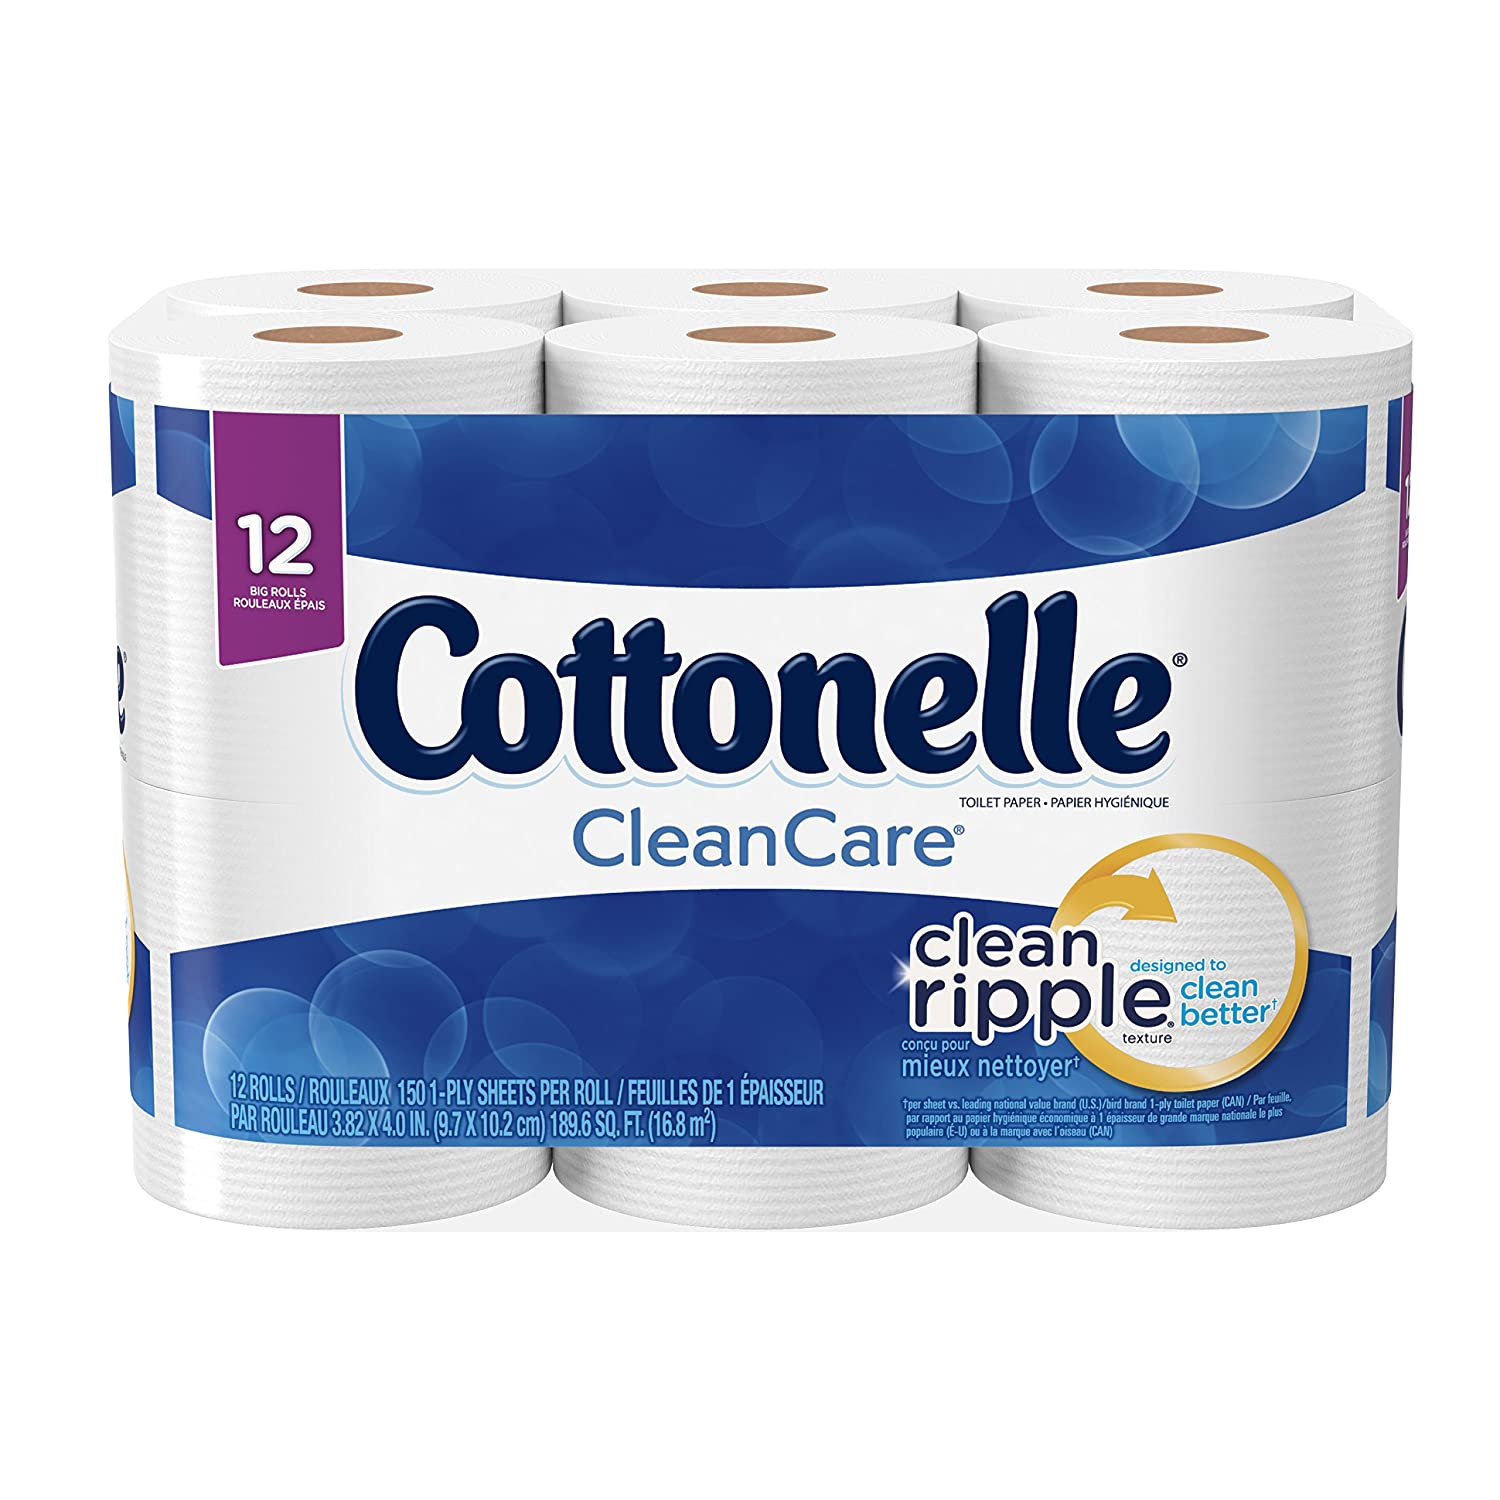 Amazon.com: Cottonelle CleanCare Big Roll Toilet Paper, Bath ...